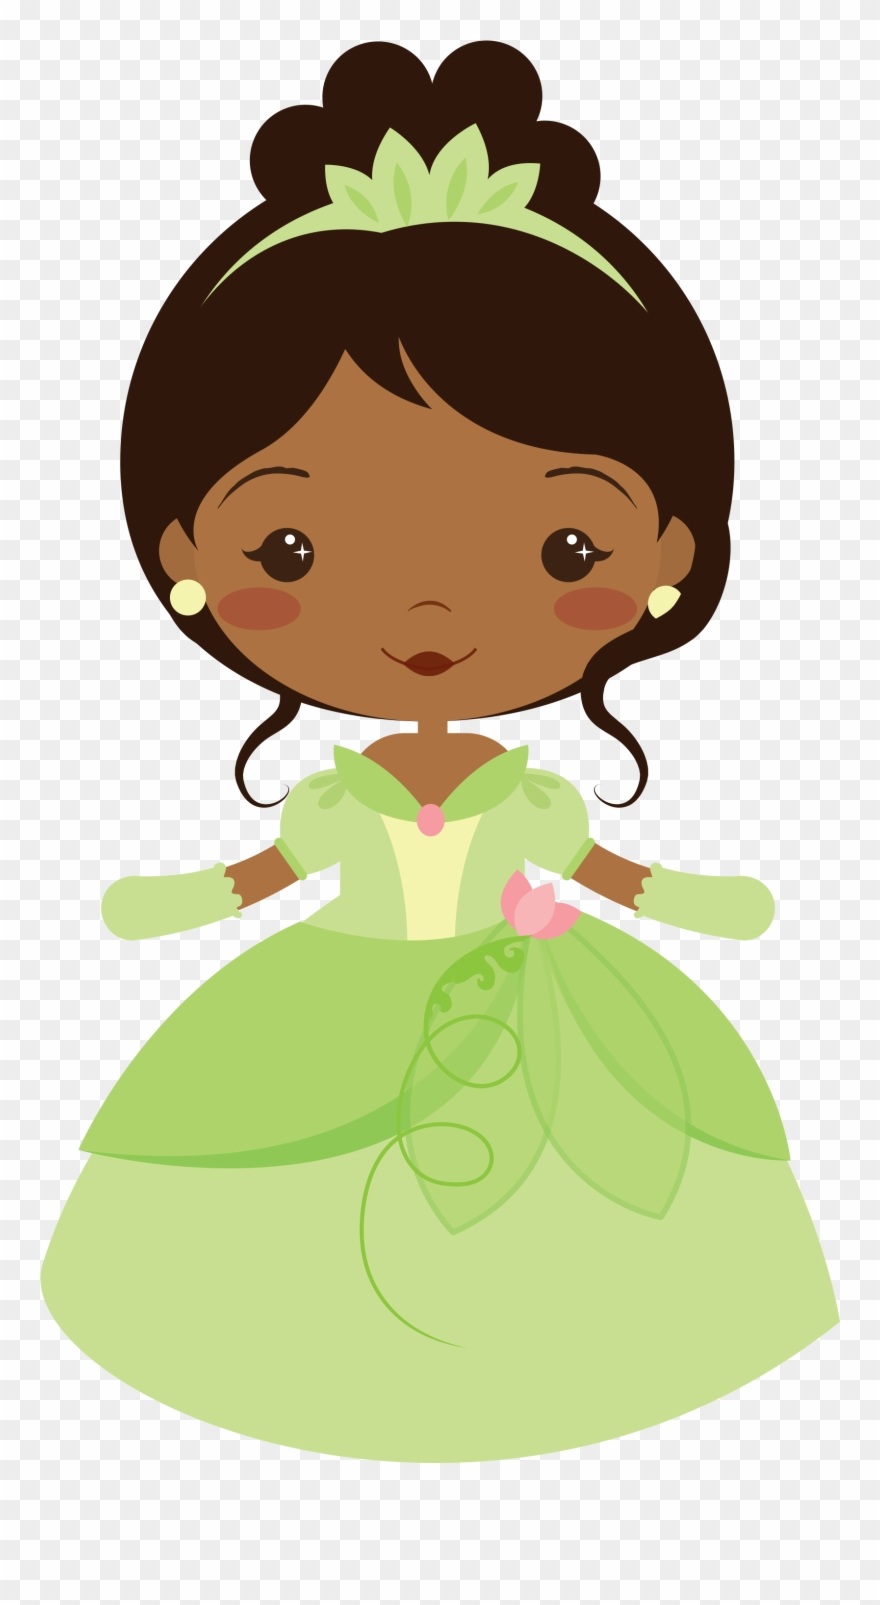 hight resolution of iswhwipvlyfxb anlu special moments cute princess tiana clipart png download